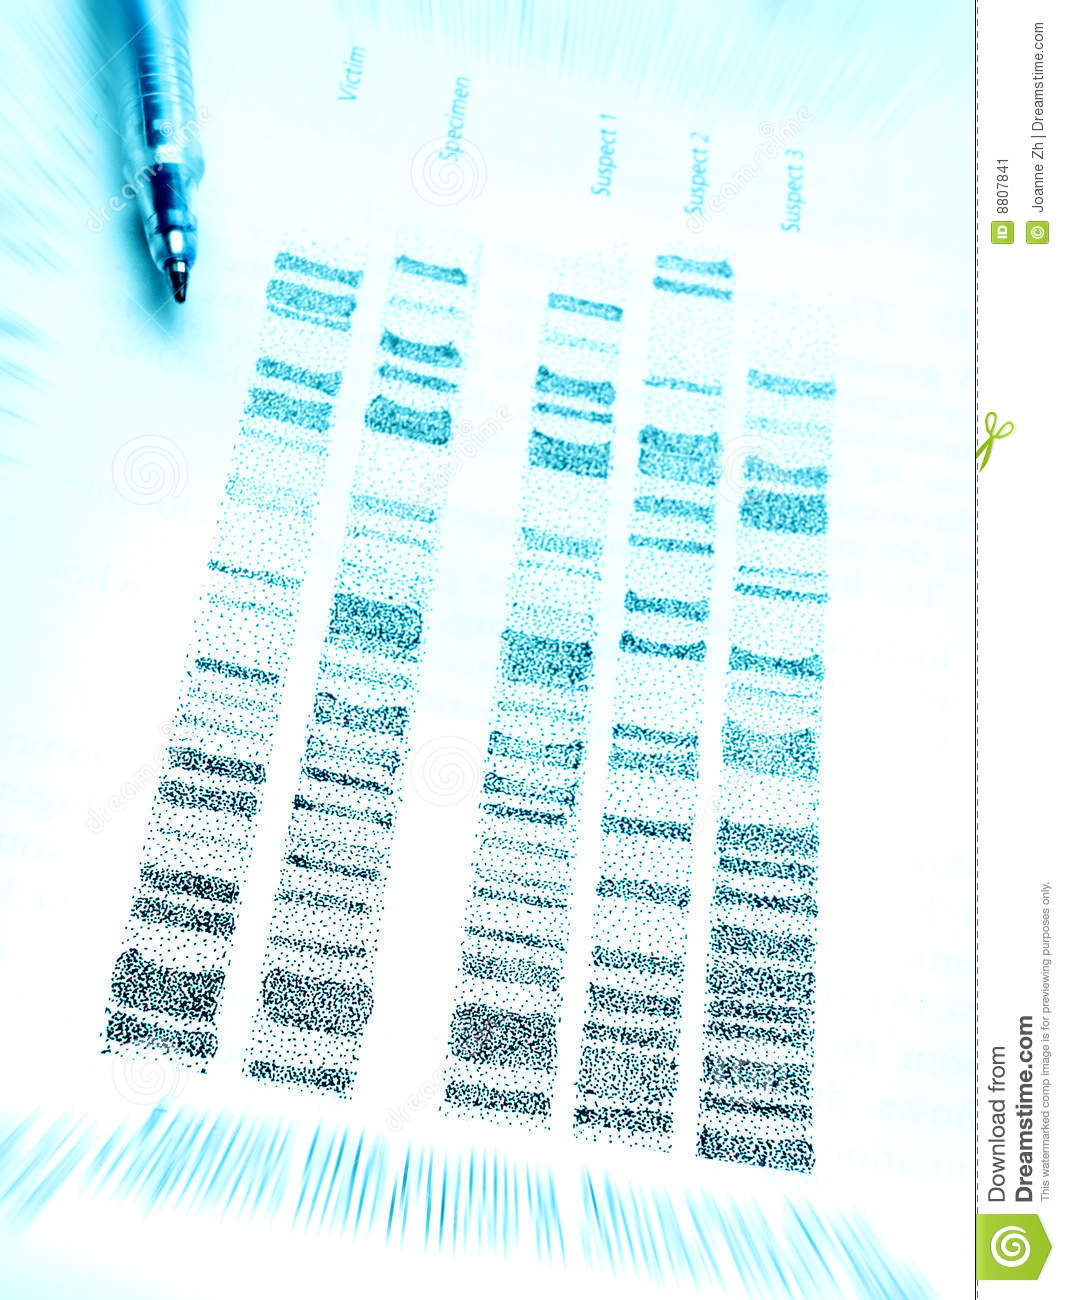 dna in forensic science Forensics how accurate is dna evidence fingerprints read forensic science articles on the successes and limitations of identification techniques.